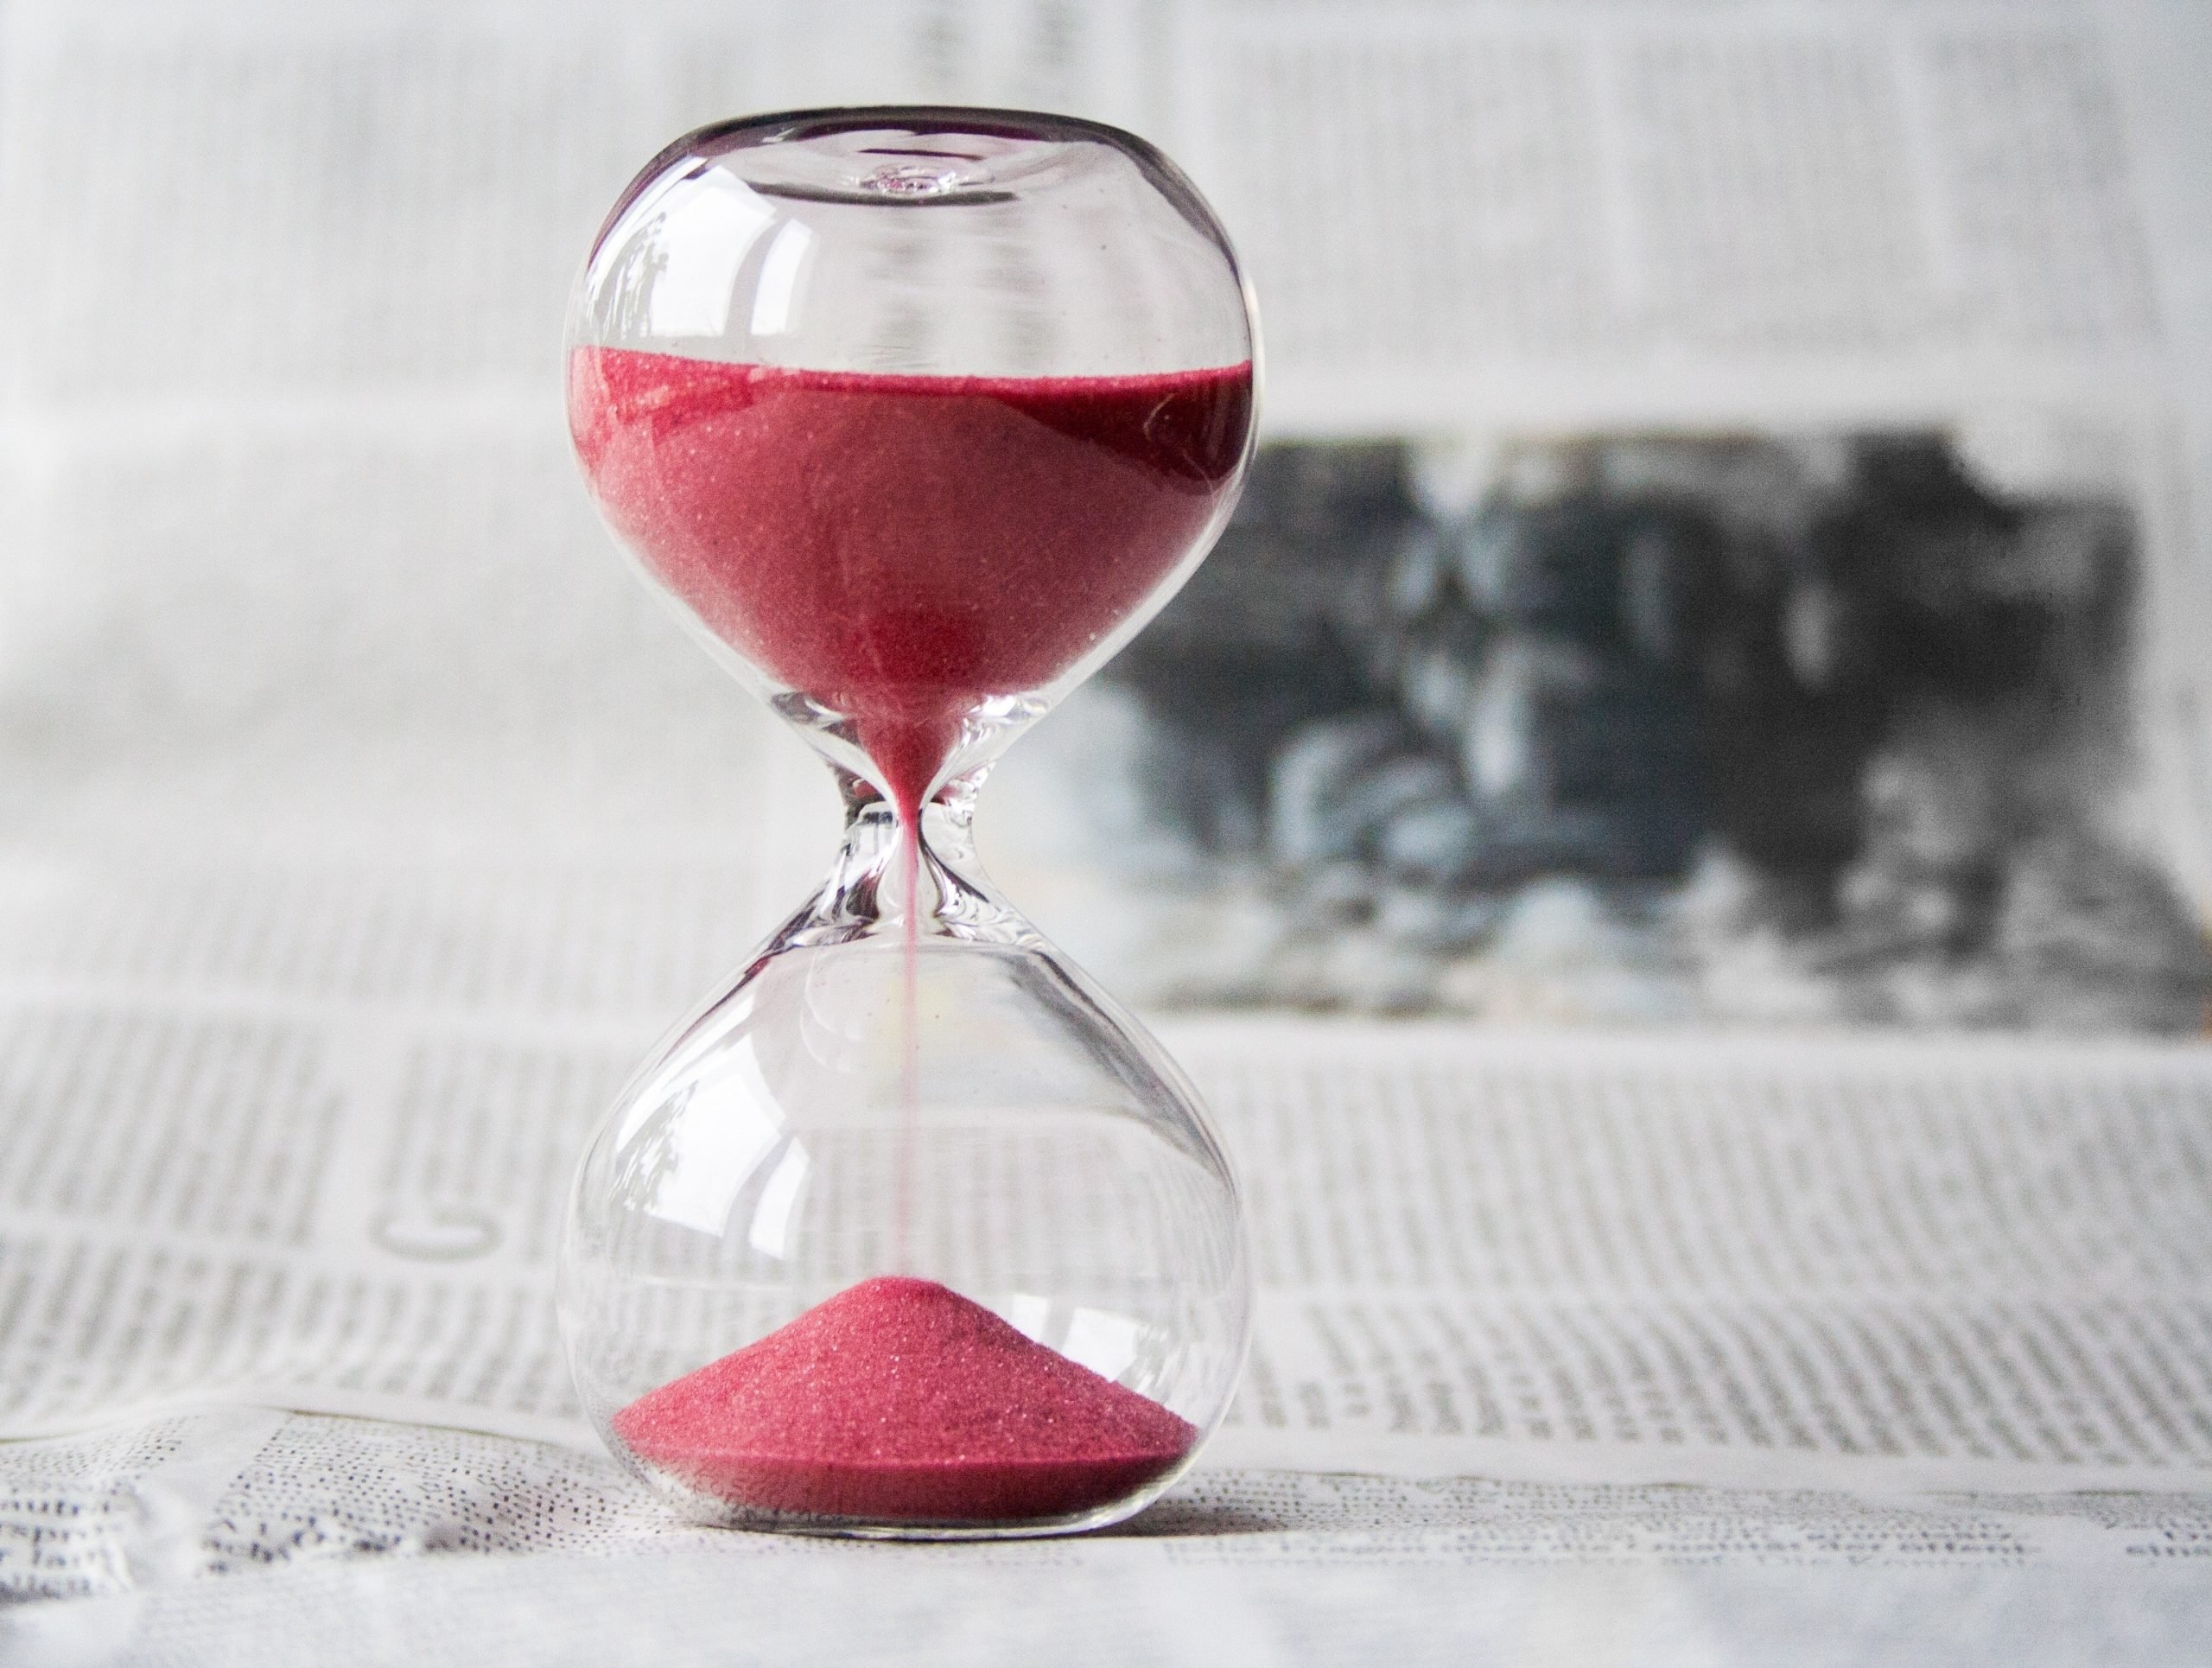 An hourglass symbolizing time